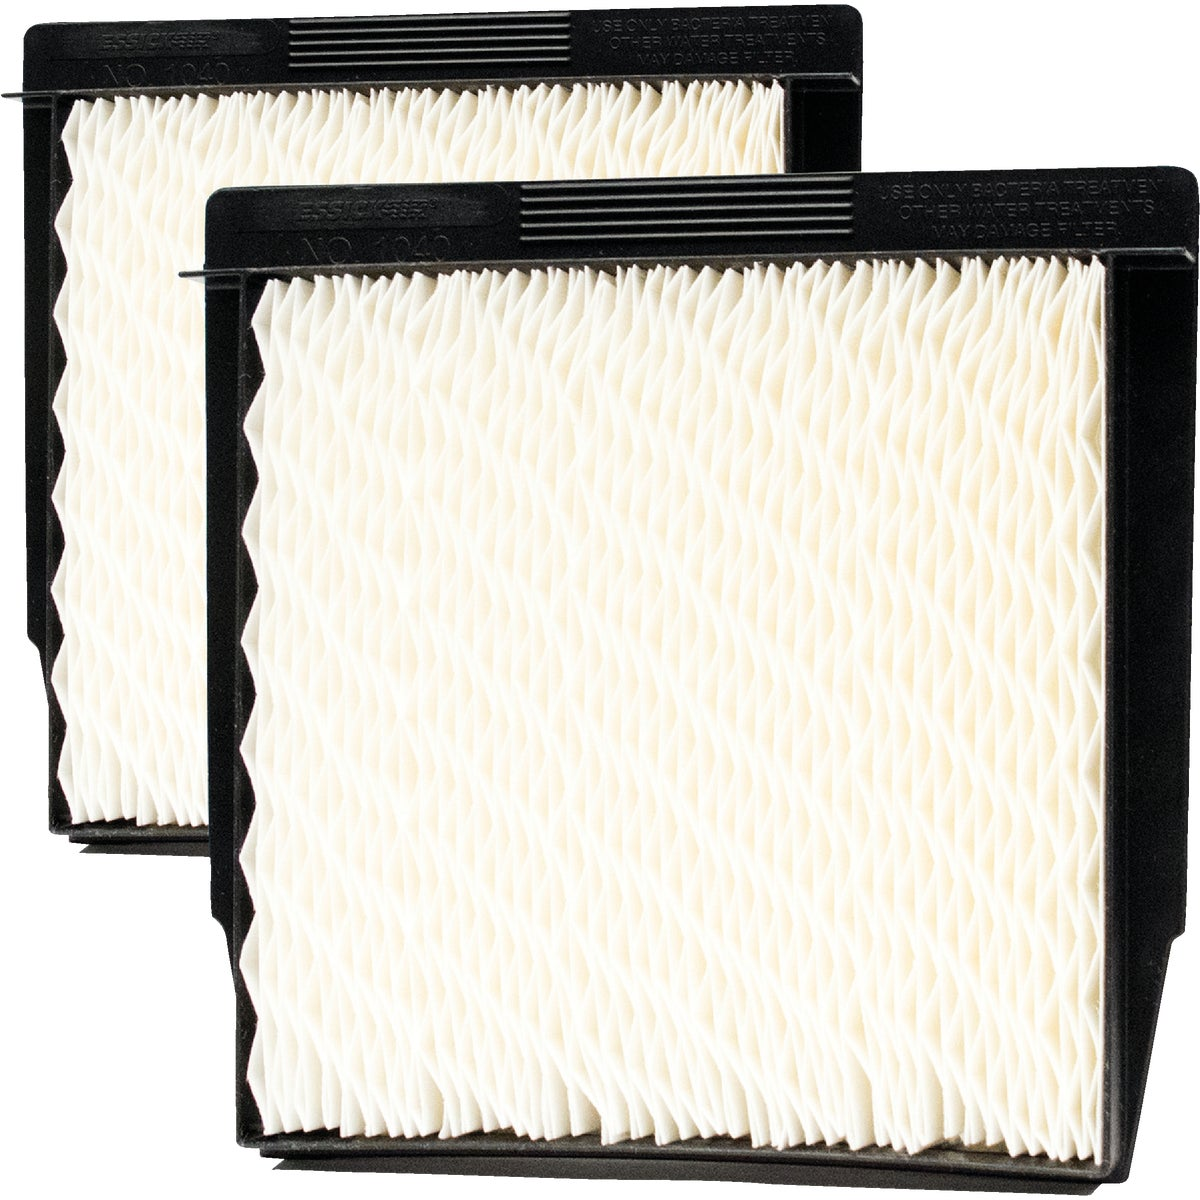 HUMIDIFIER WICK FILTER - 1040 by Essick Air Products